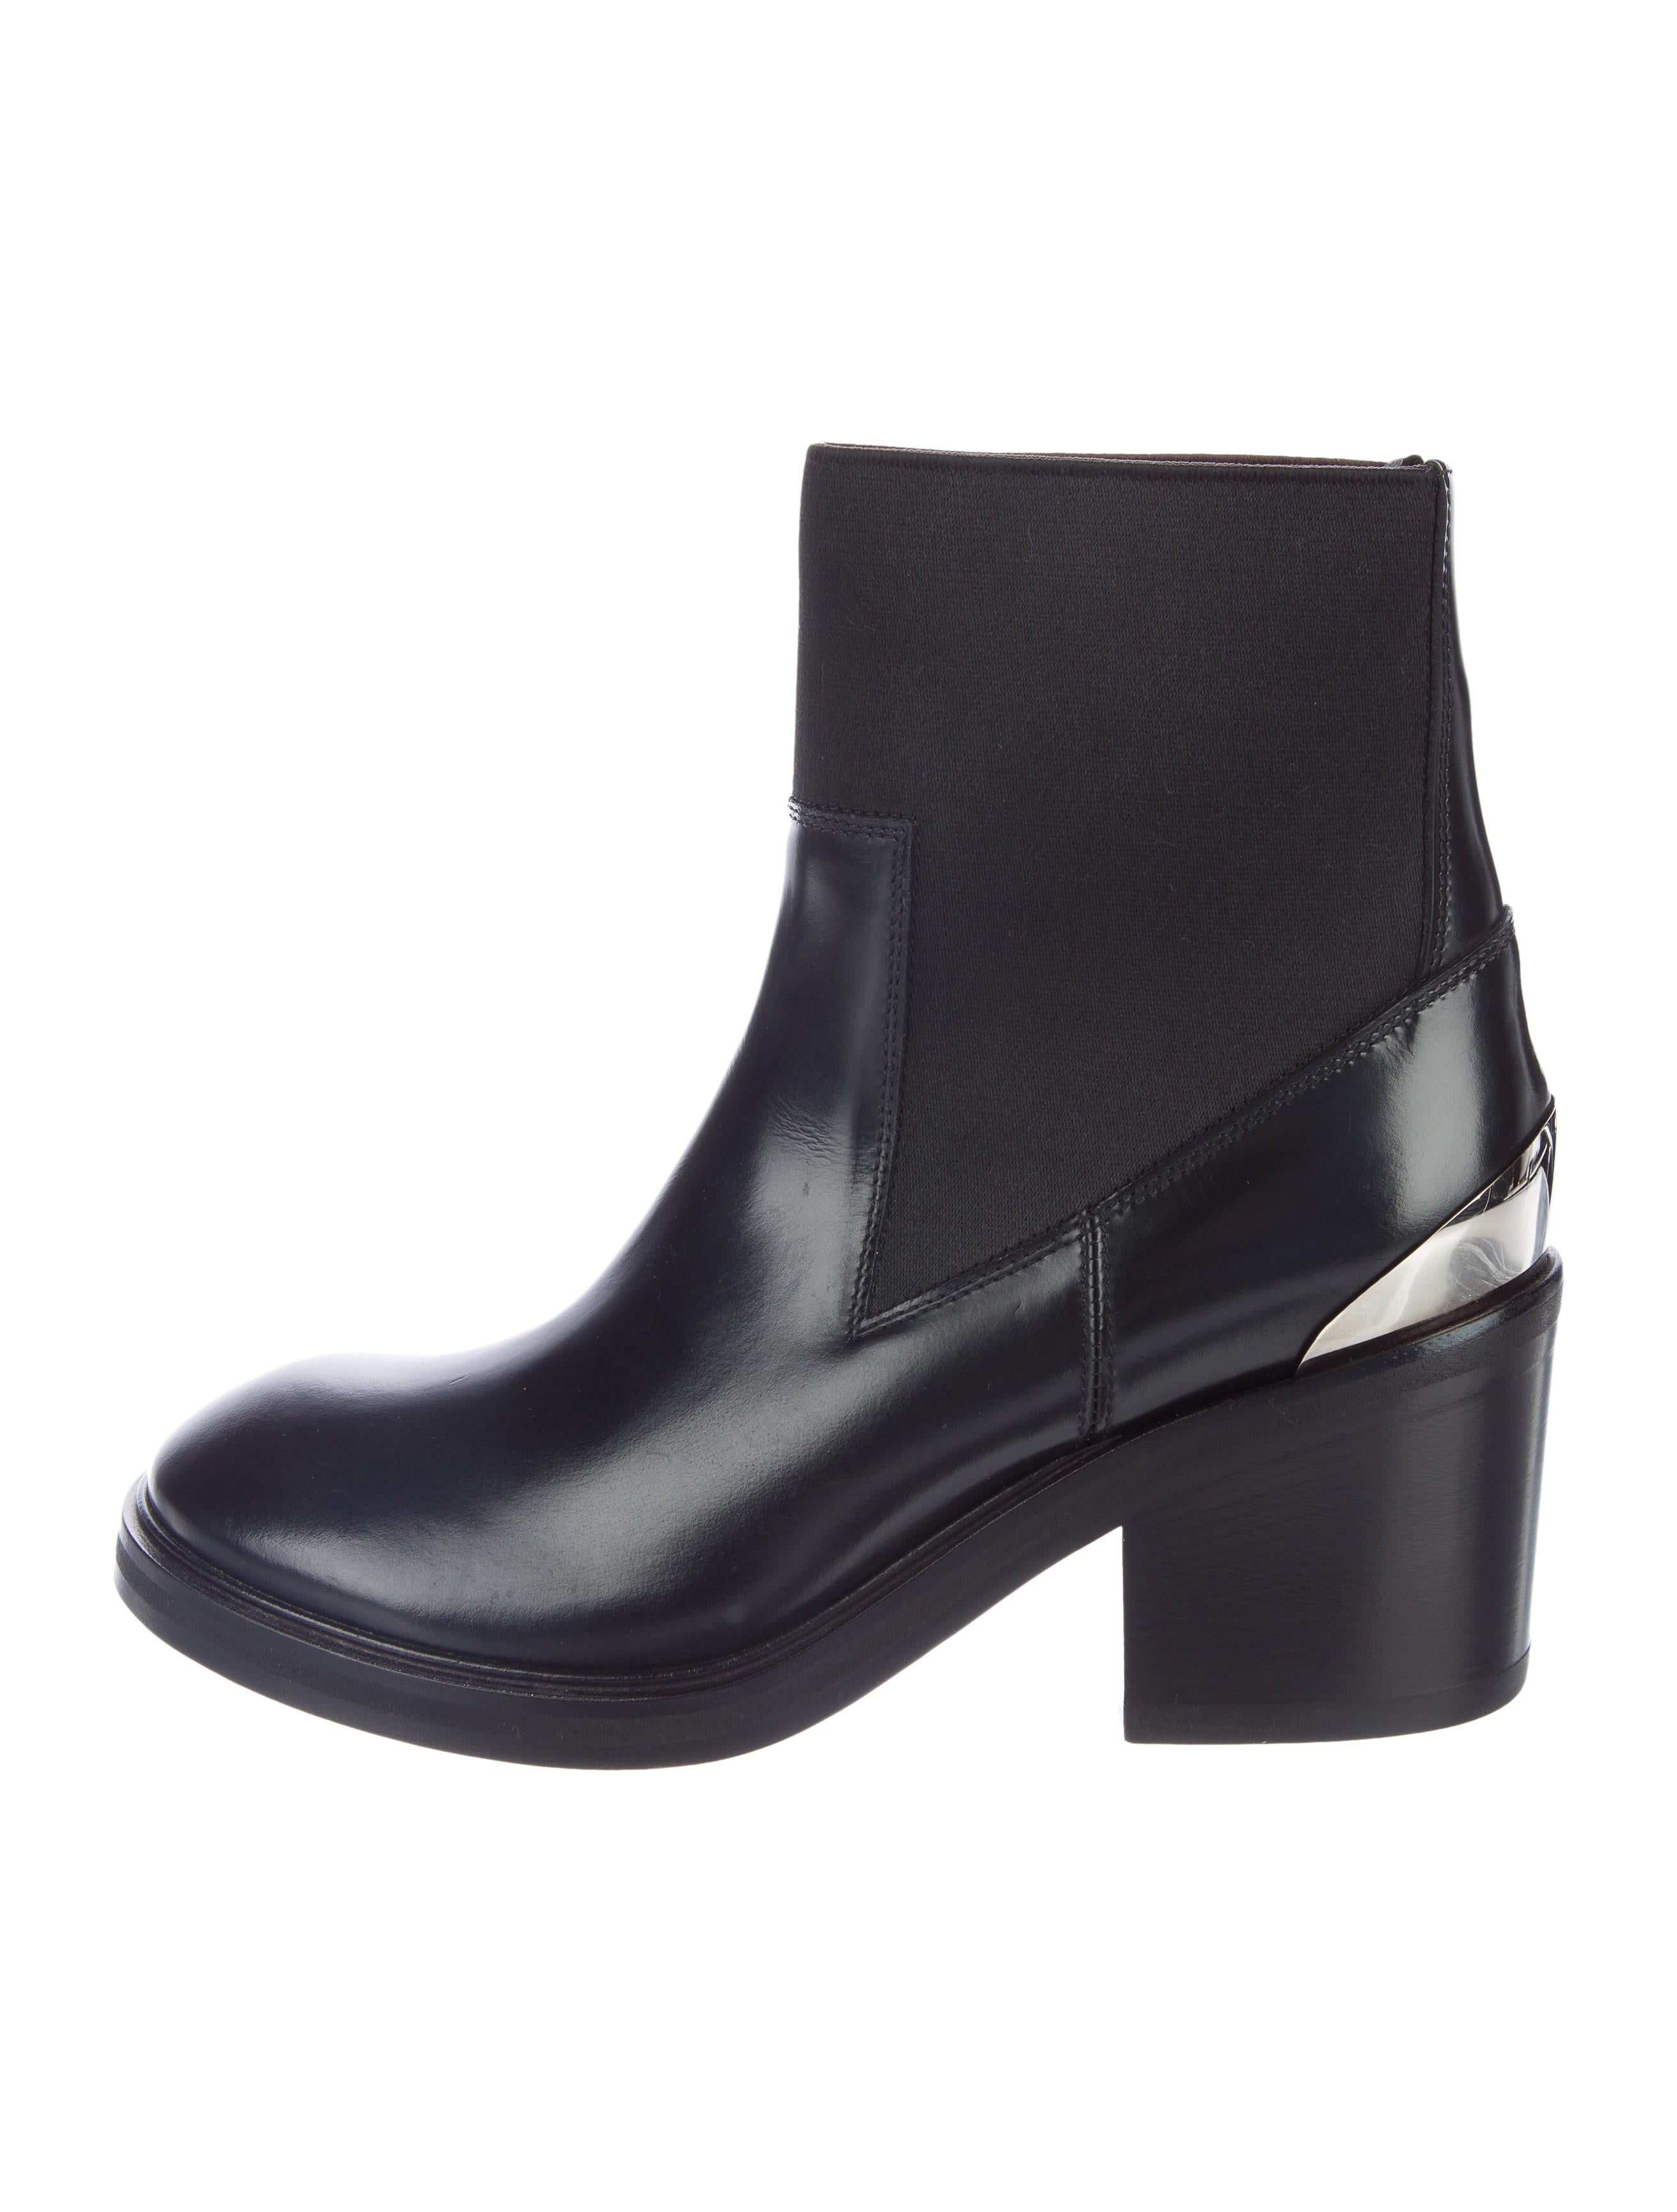 03395486f37 Acne Studios Acne Dion Leather Ankle Boots - Shoes - ACN27190